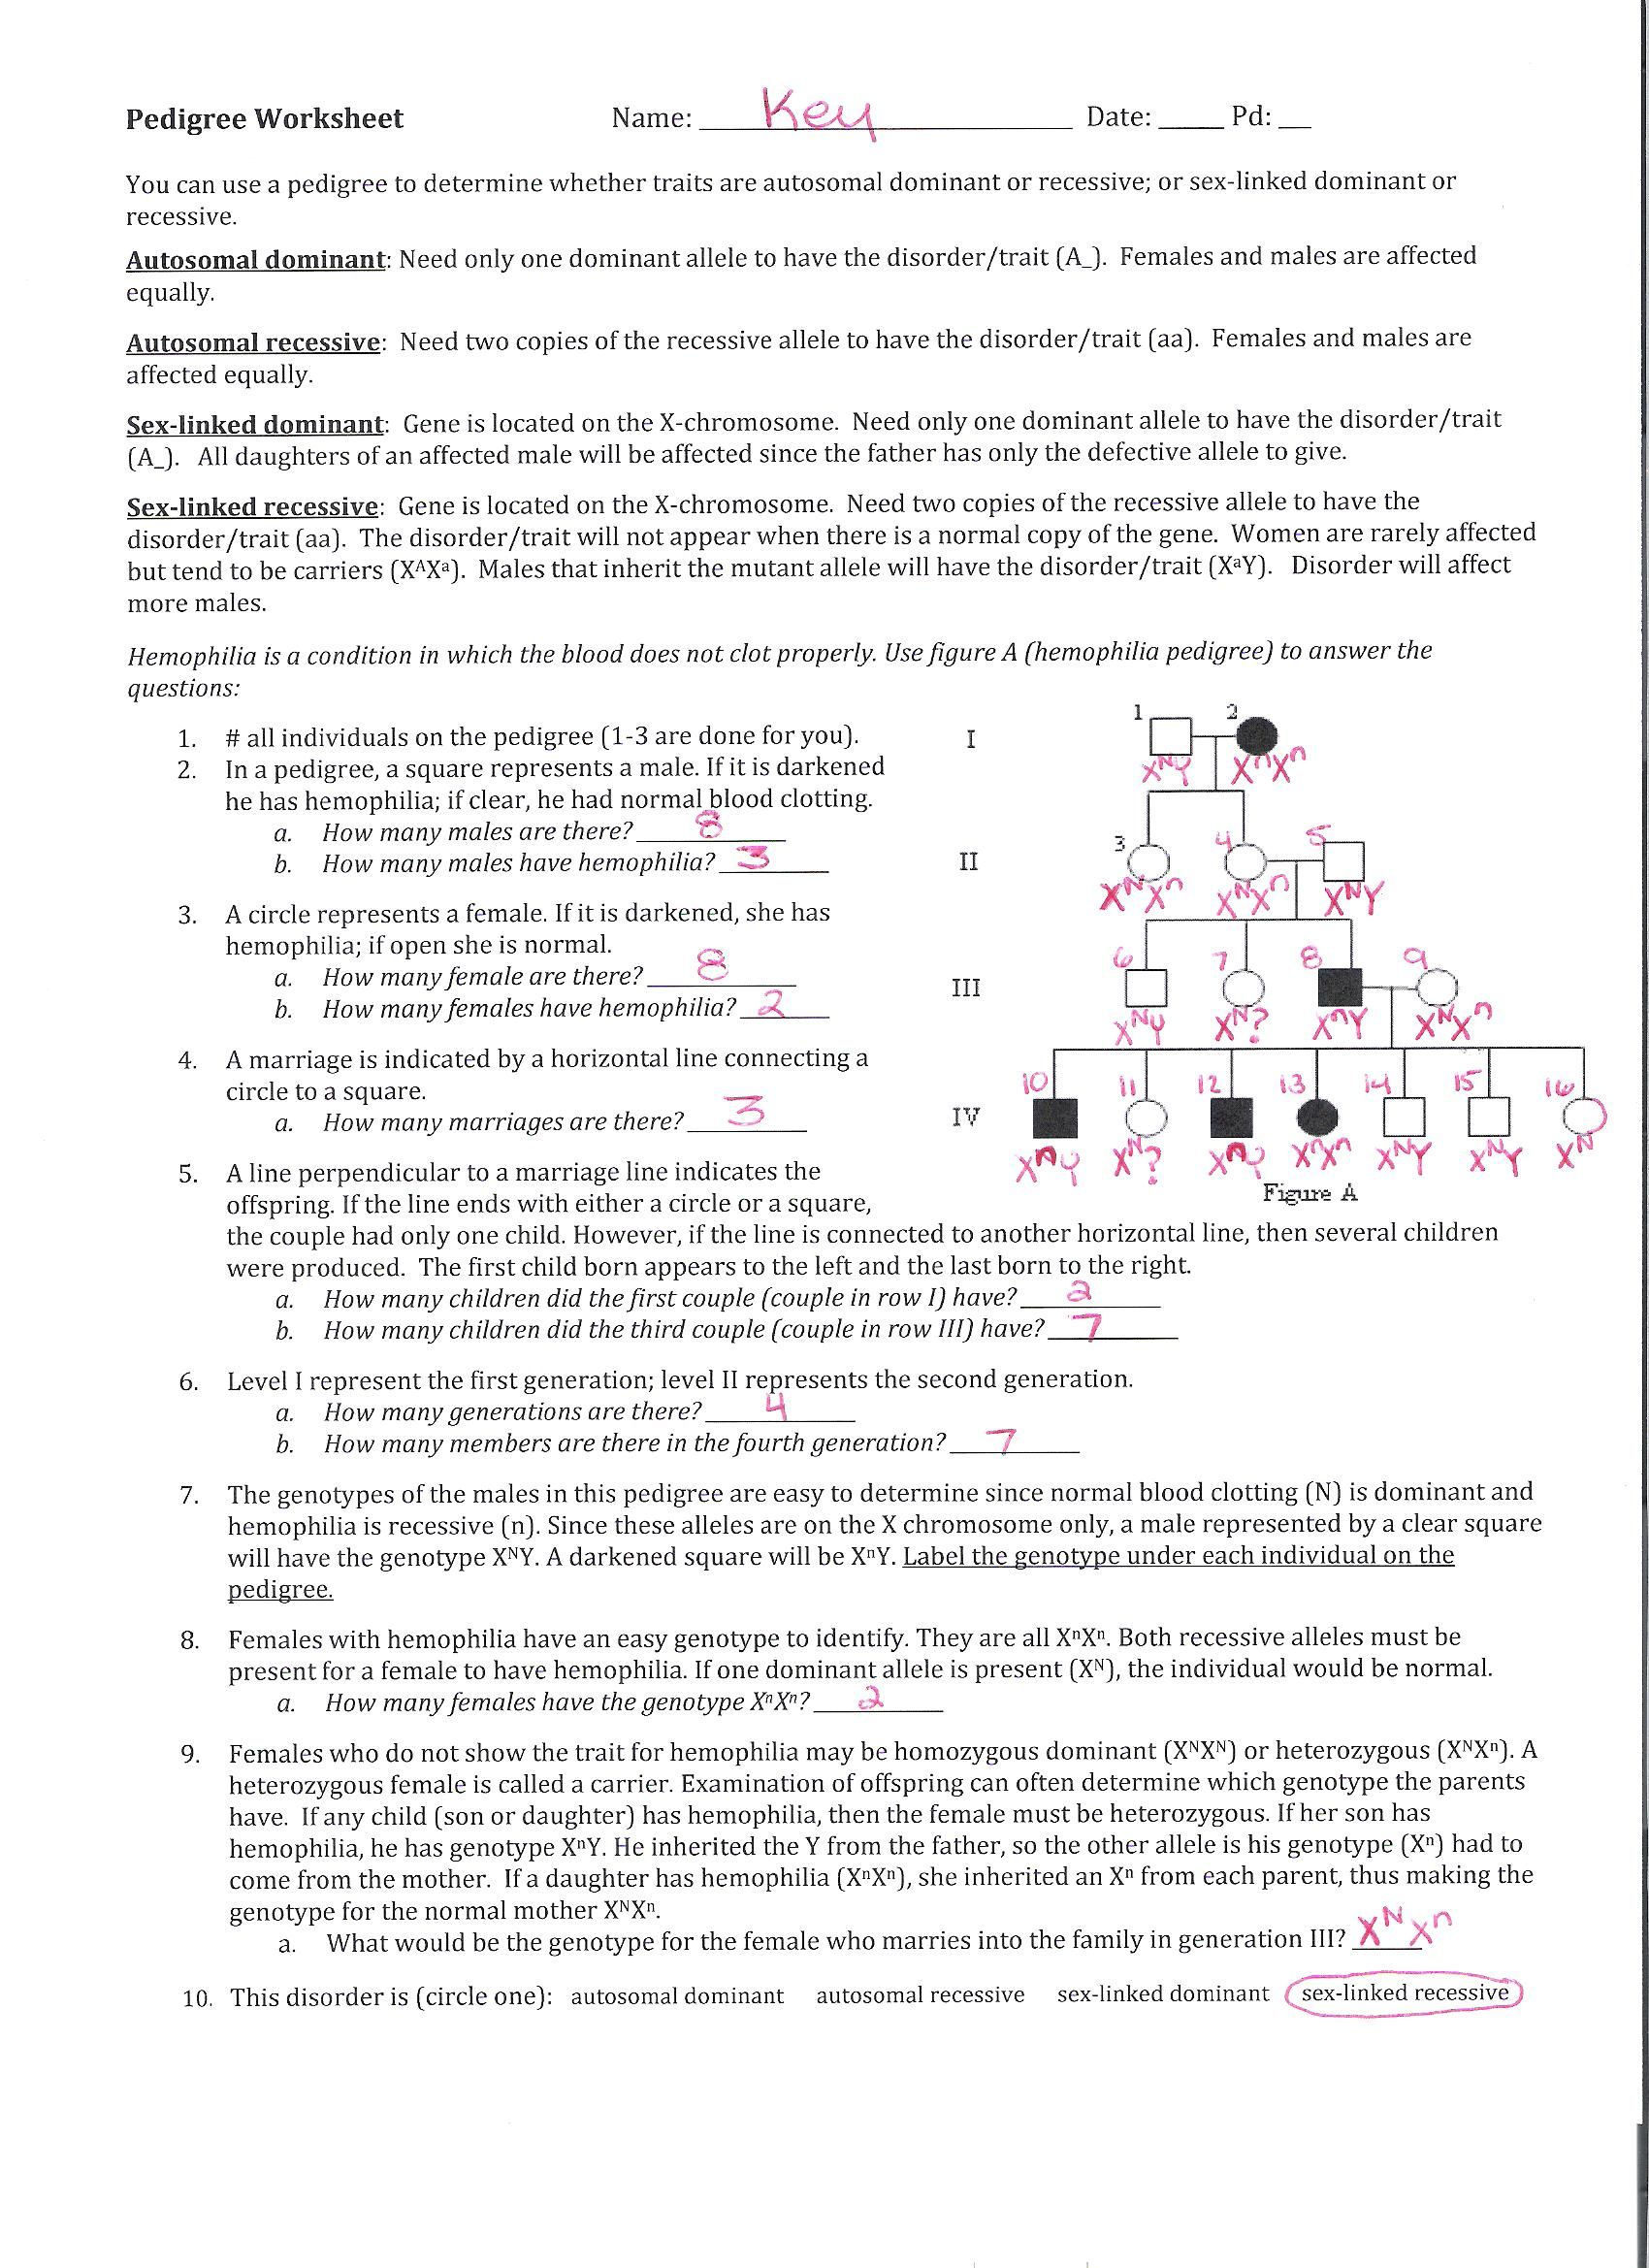 Pedigree Worksheet Answers To Pedigree Worksheet